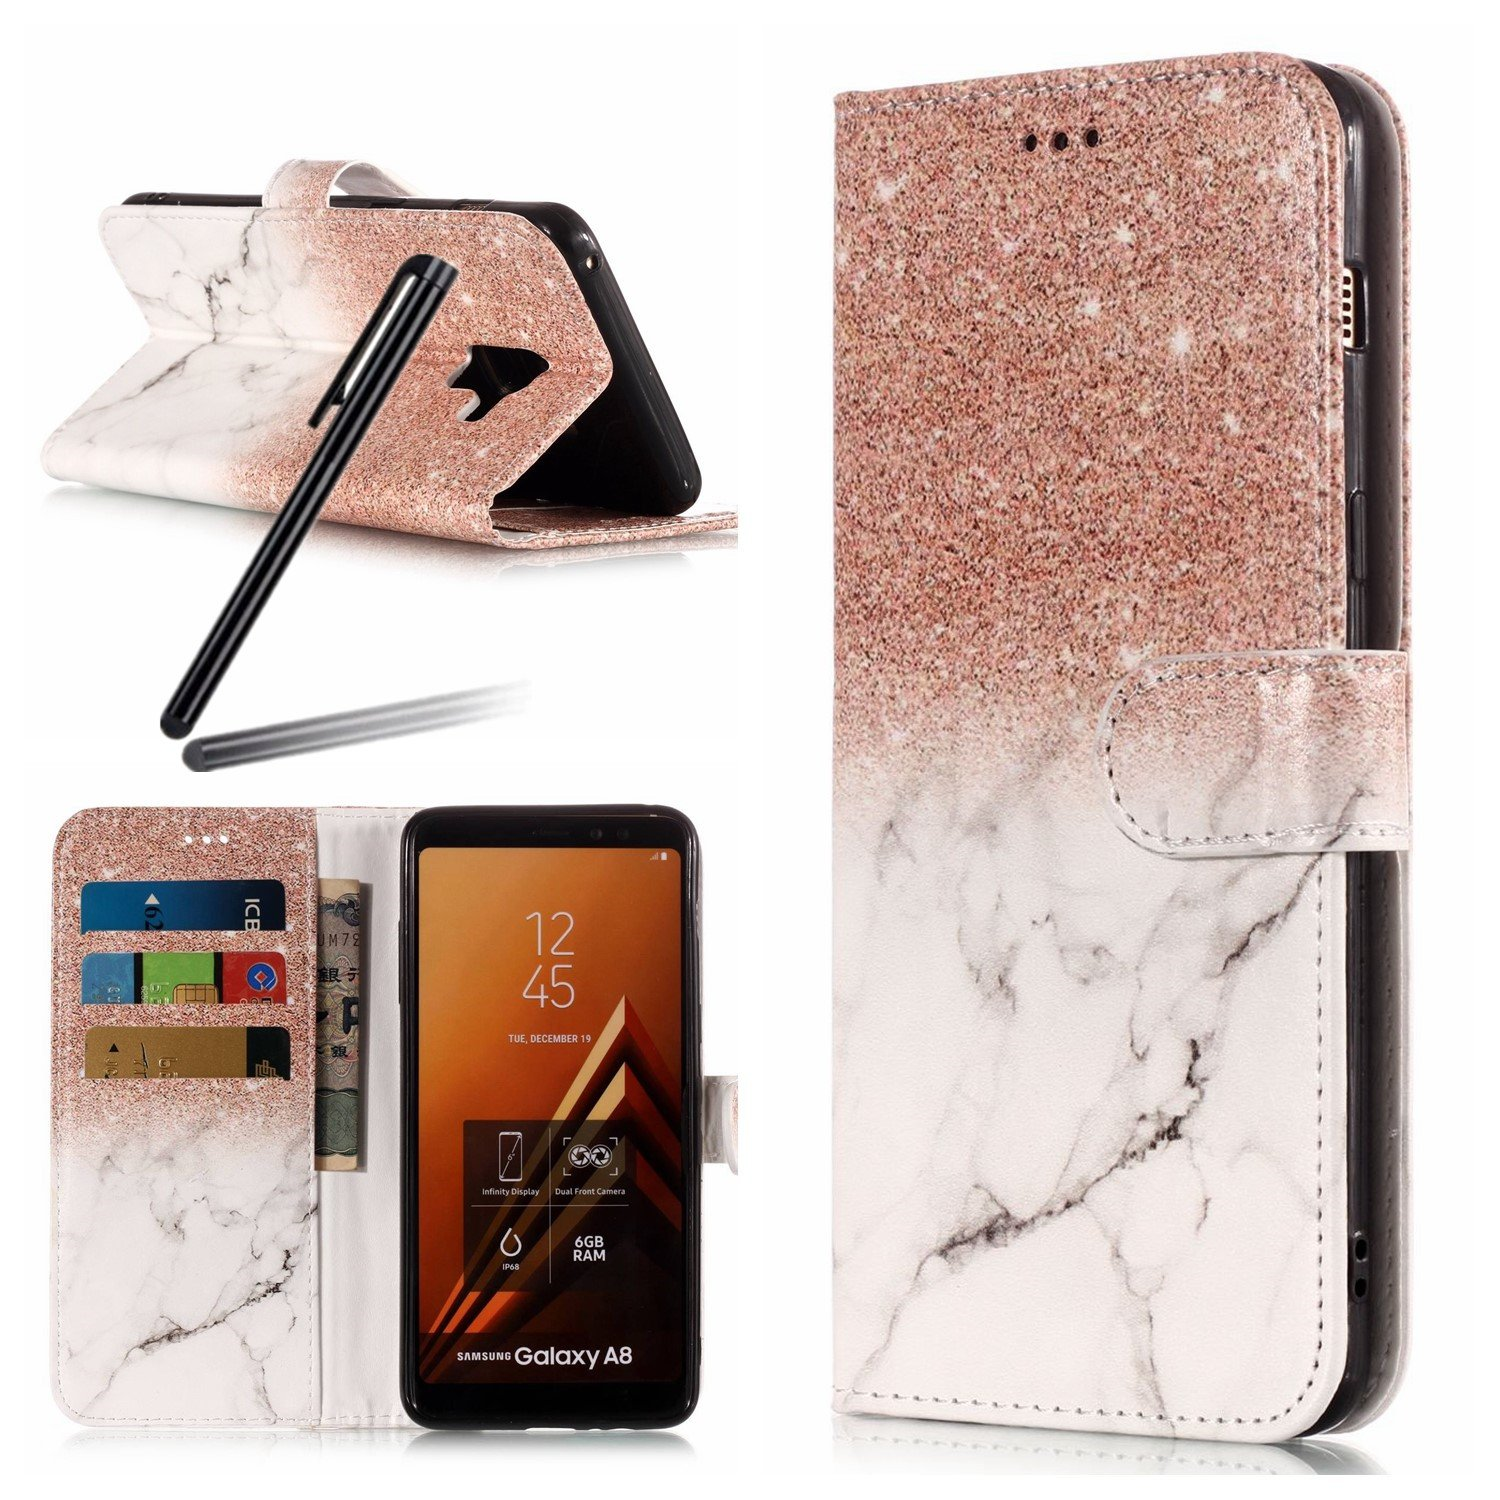 A8 Plus 2018 Case, Samsung Galaxy A8 Plus 2018 Wallet Case, Galaxy A8 Plus 2018 Kickstand Case, SKYMARS Marble Creative Design PU Leather Shock Absorbing Bumper Kickstand Cards Slot Wallet Magnet Stand Flip Folio Cover Case for Samsung Galaxy A8 Plus 2018